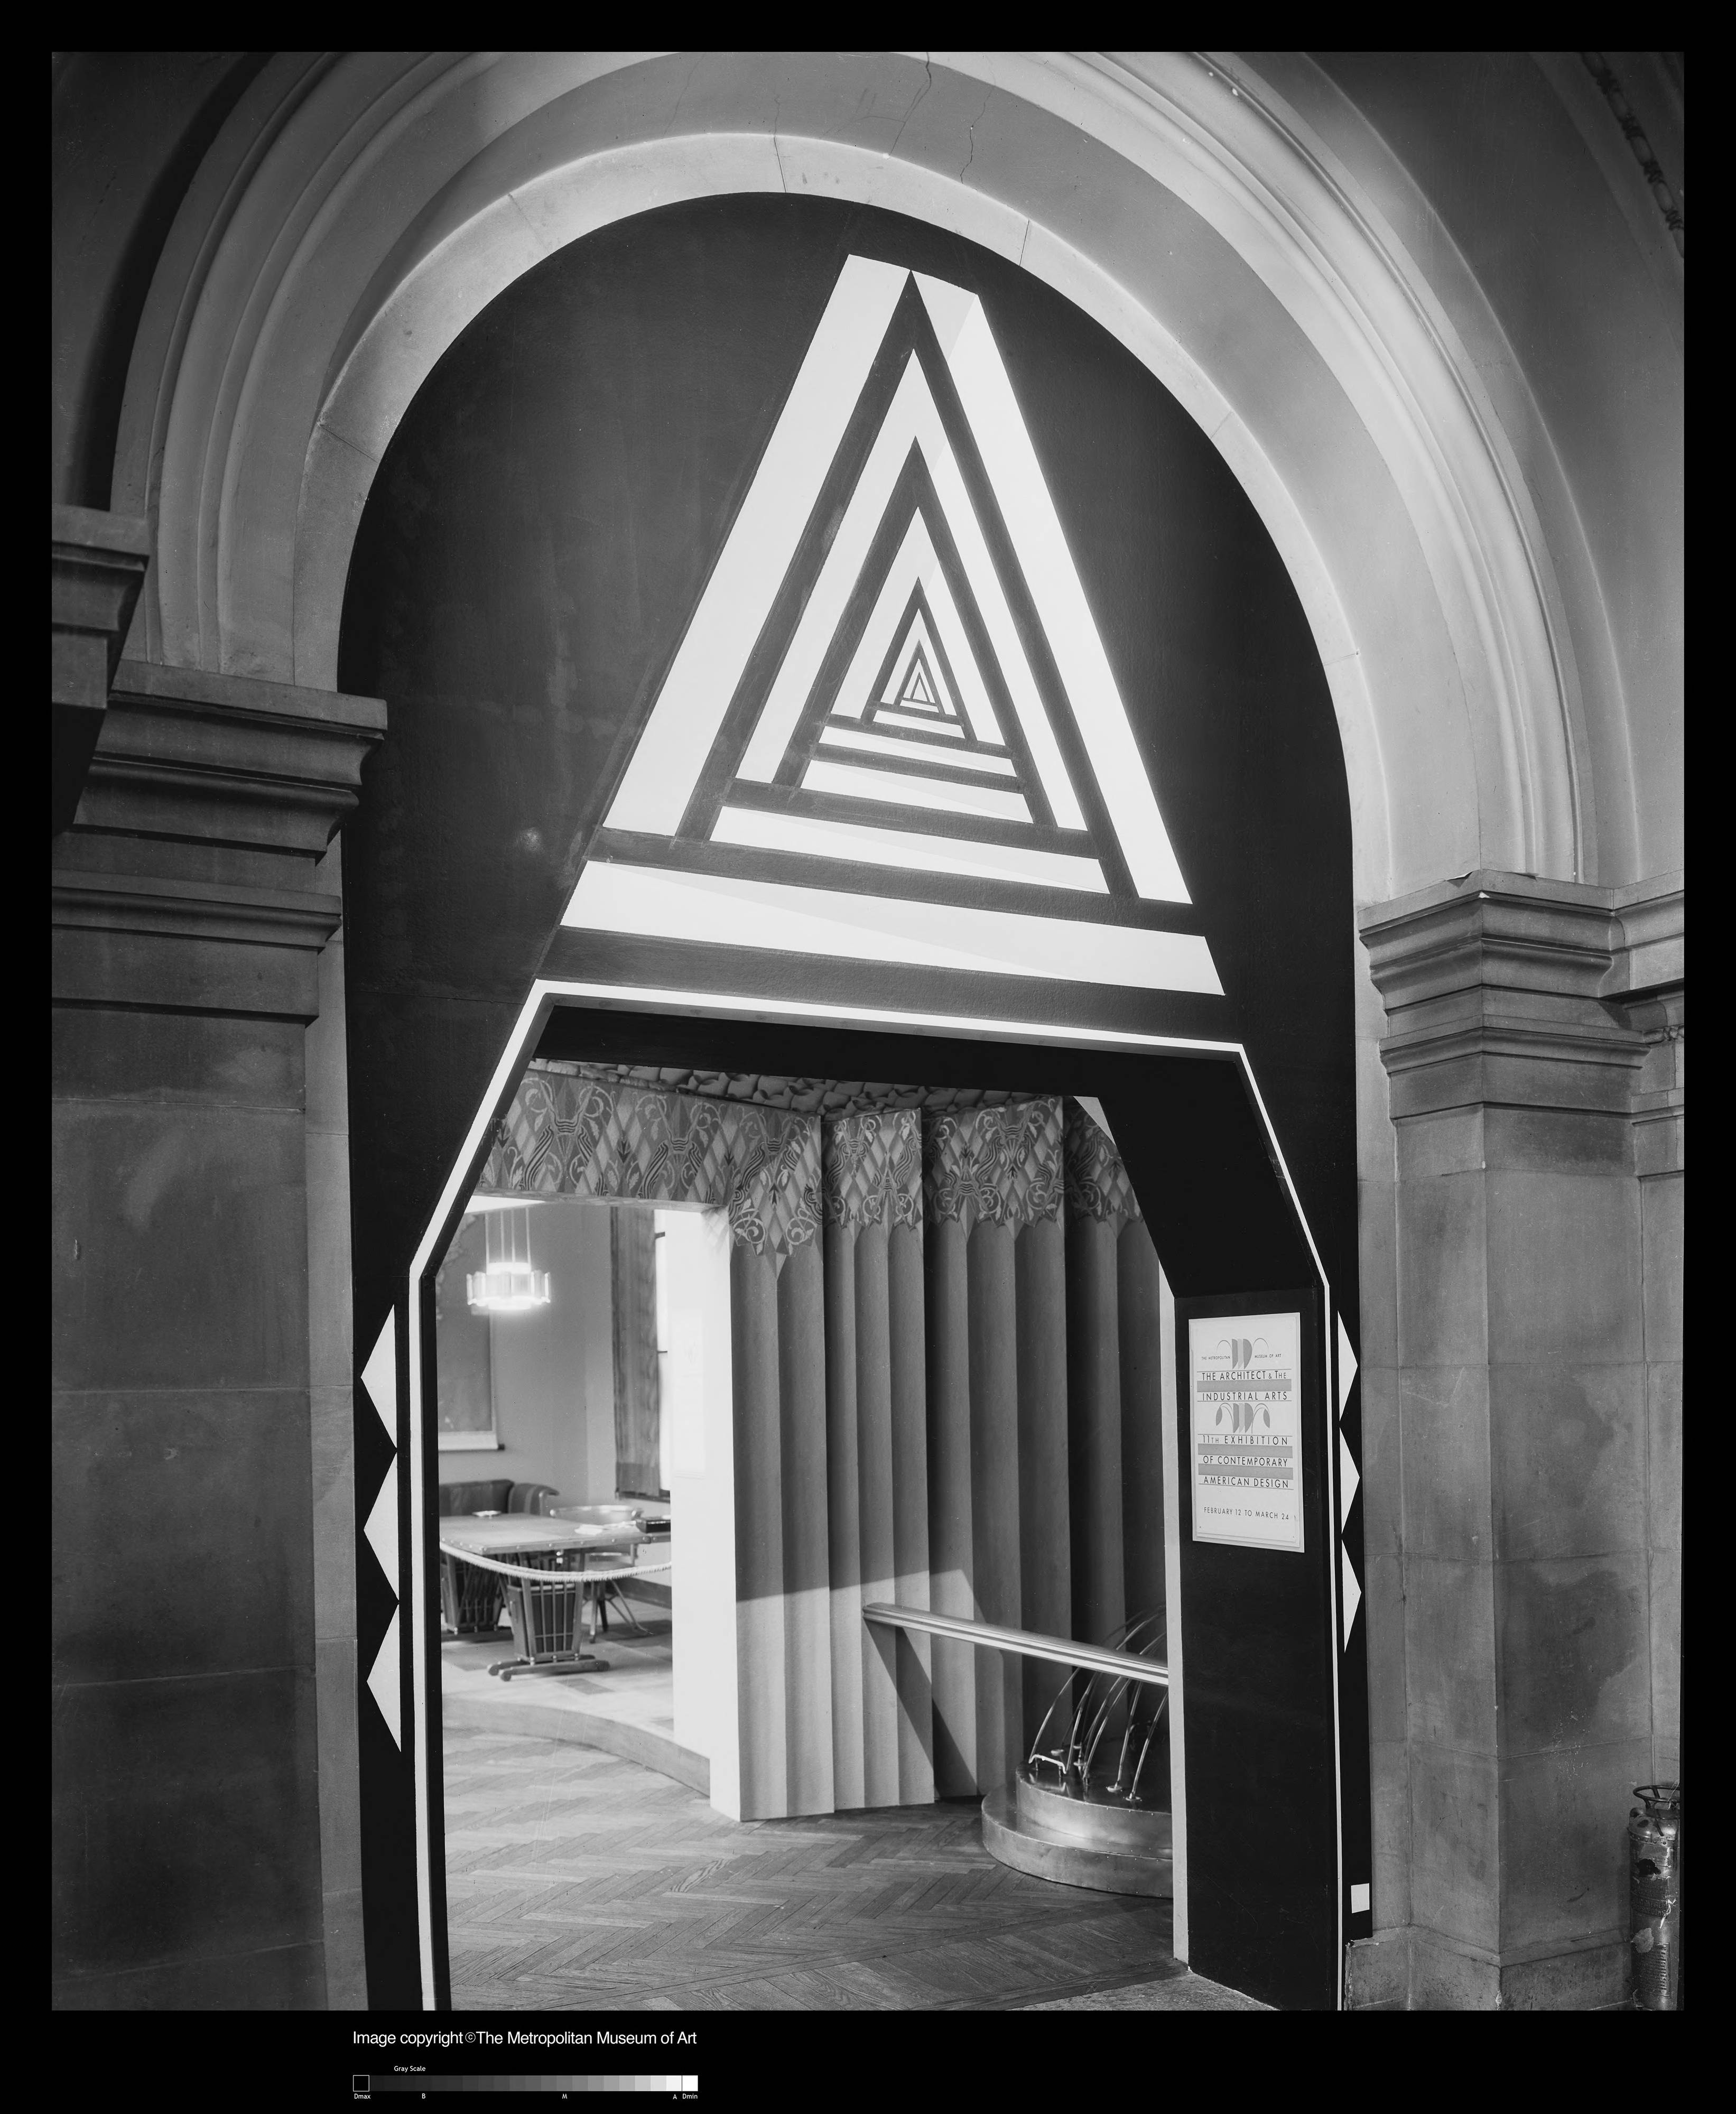 Entrance to The Architect and the Industrial Arts exhibition at The Metropolitan Museum of Art (1929). Designer uncredited. Note the poster by W.A. Dwiggins at right. Image Metropolitan Museum of Art.